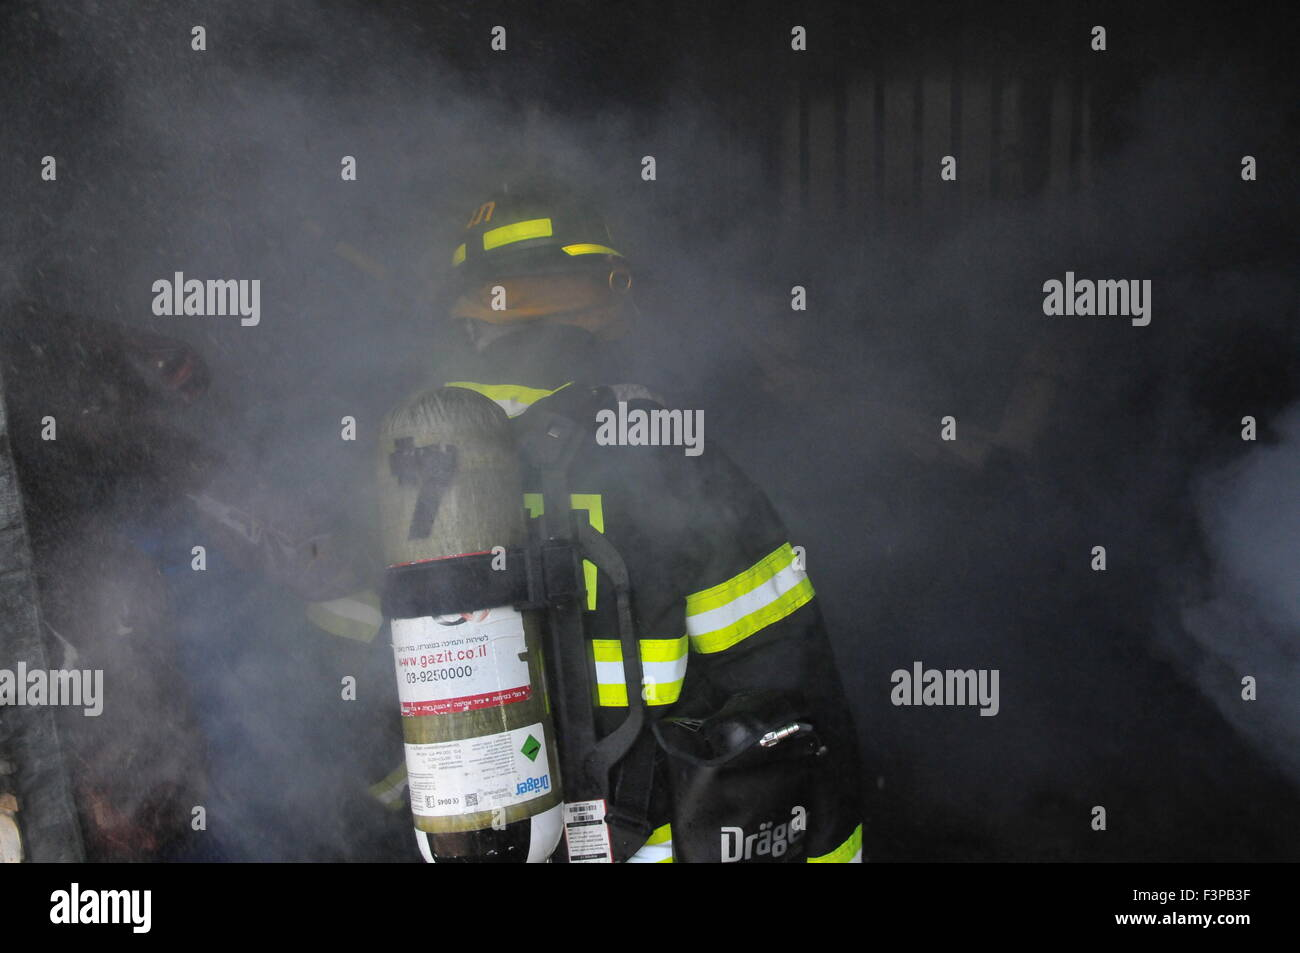 Firefighters with protective equipment enter a smoke filled room - Stock Image